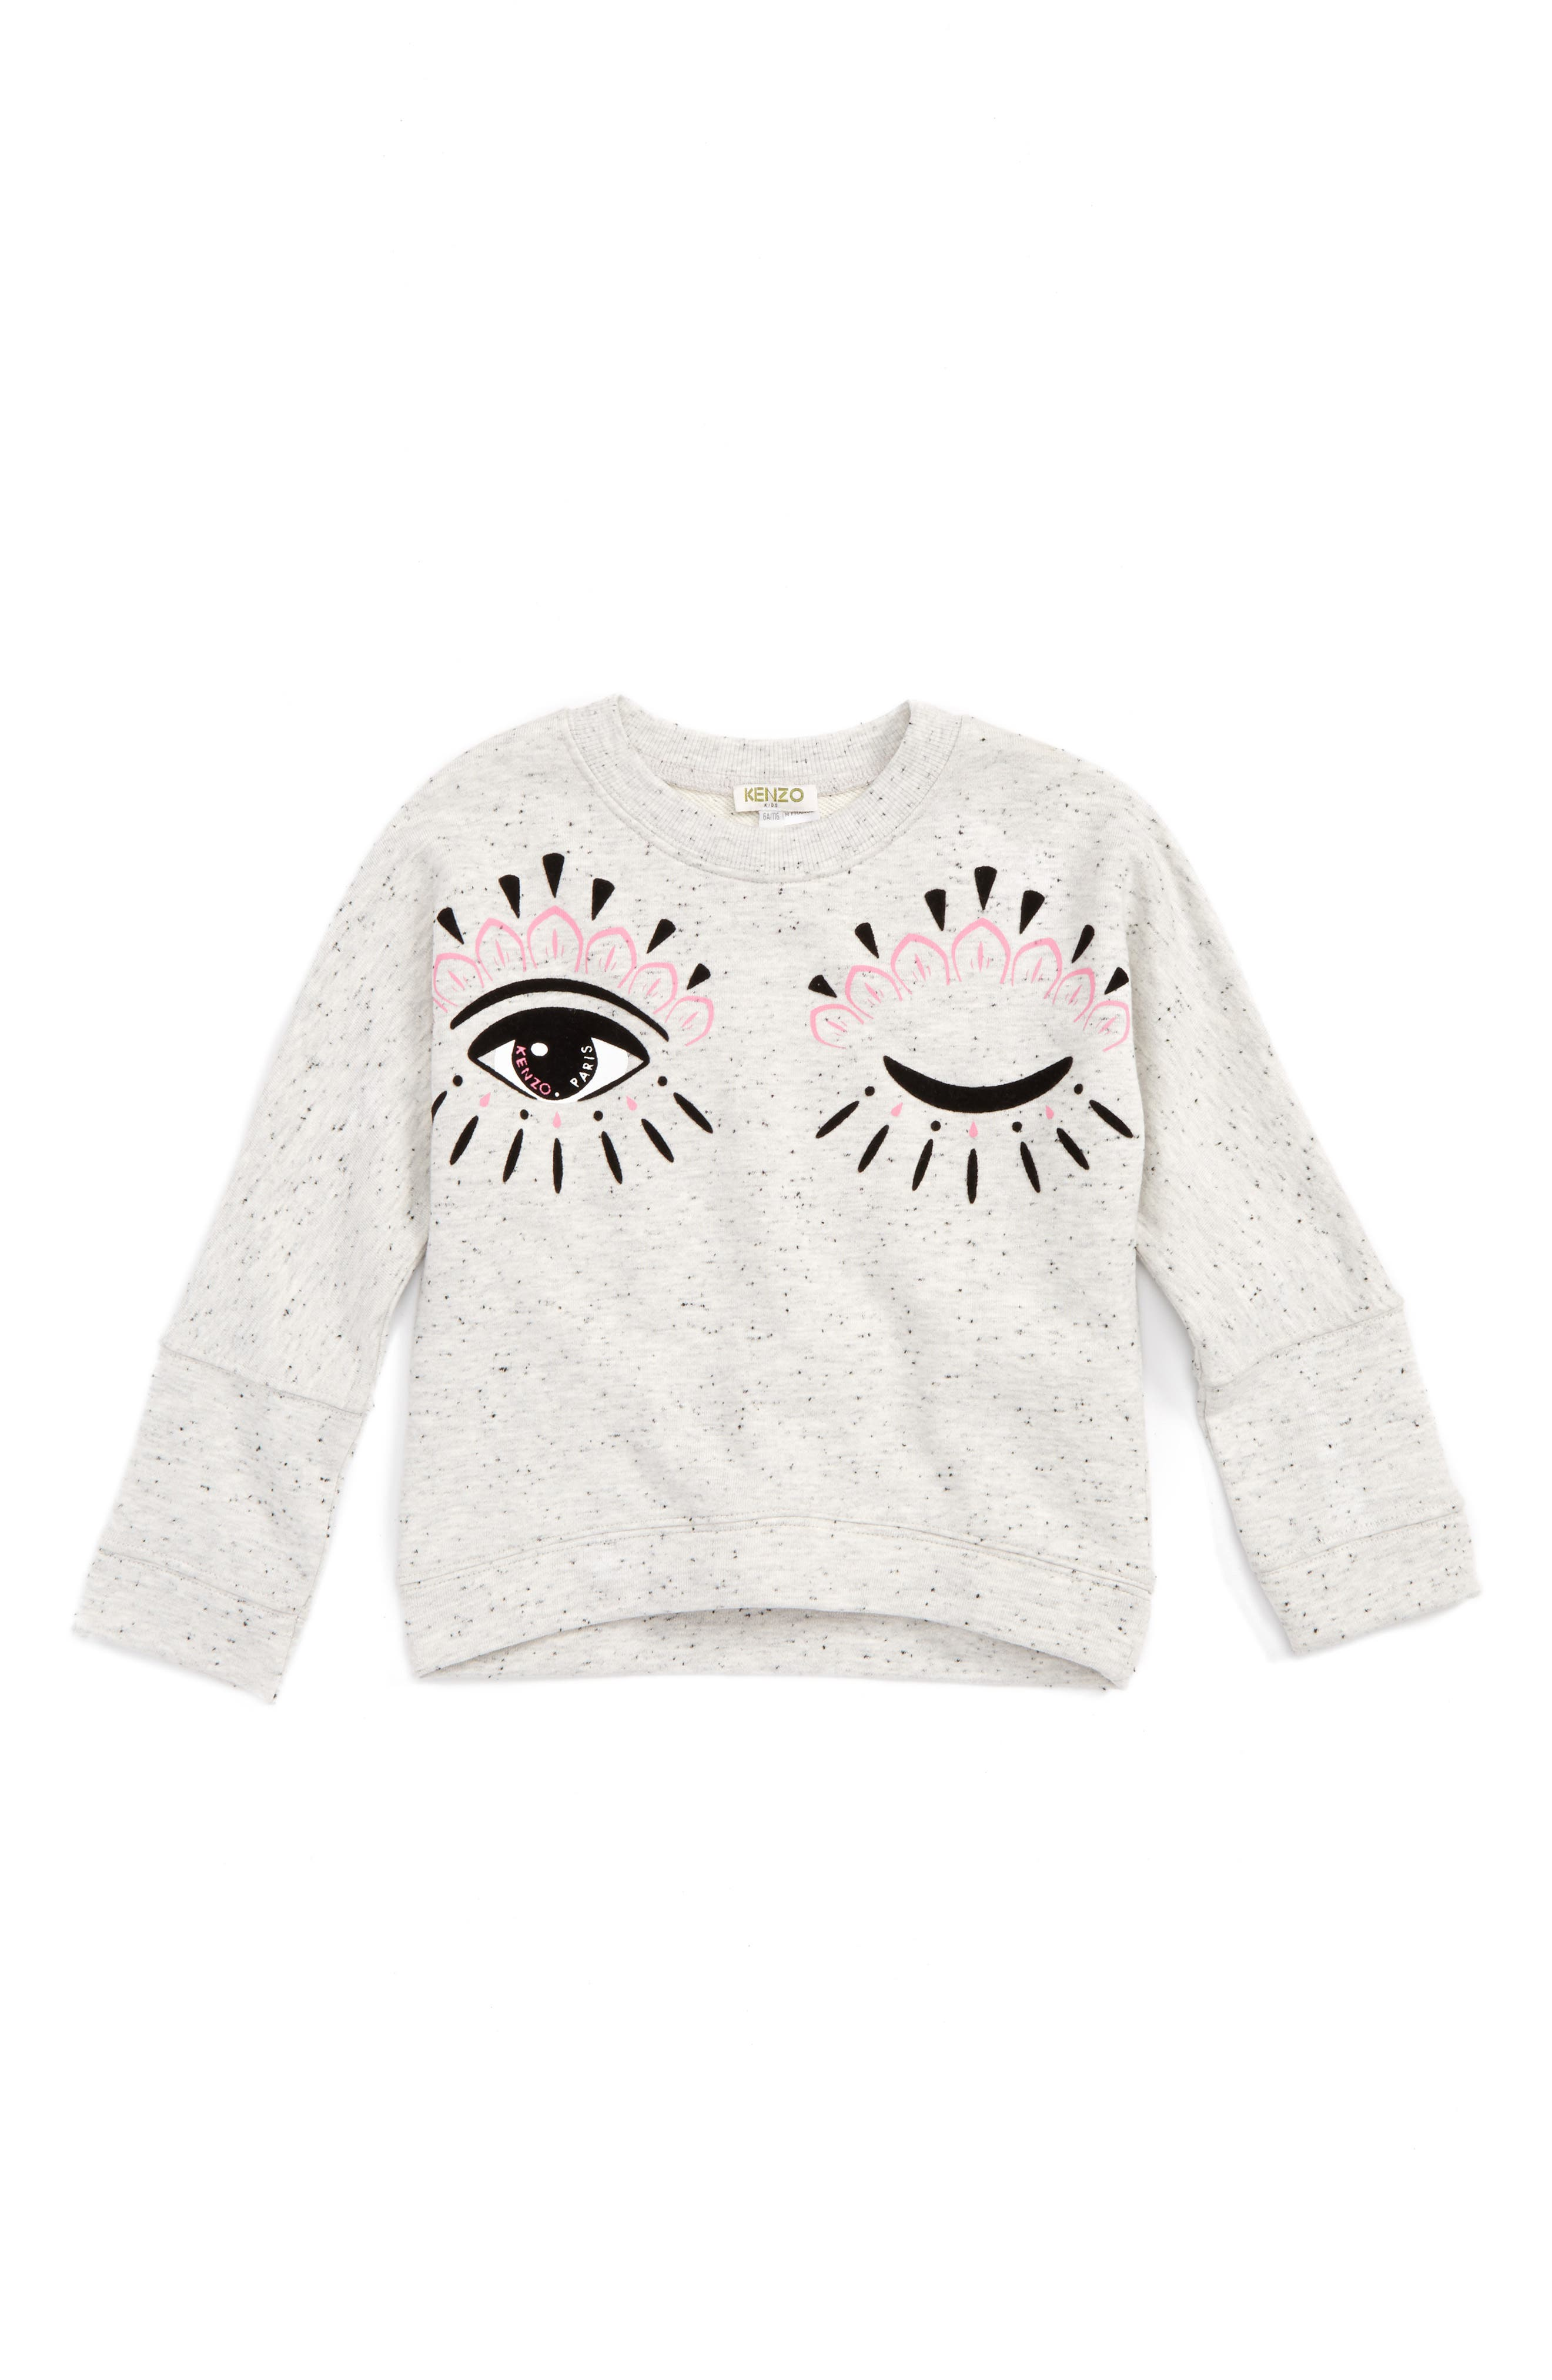 Alternate Image 1 Selected - KENZO Blinking Eye Sweatshirt (Toddler Girls, Little Girls & Big Girls)